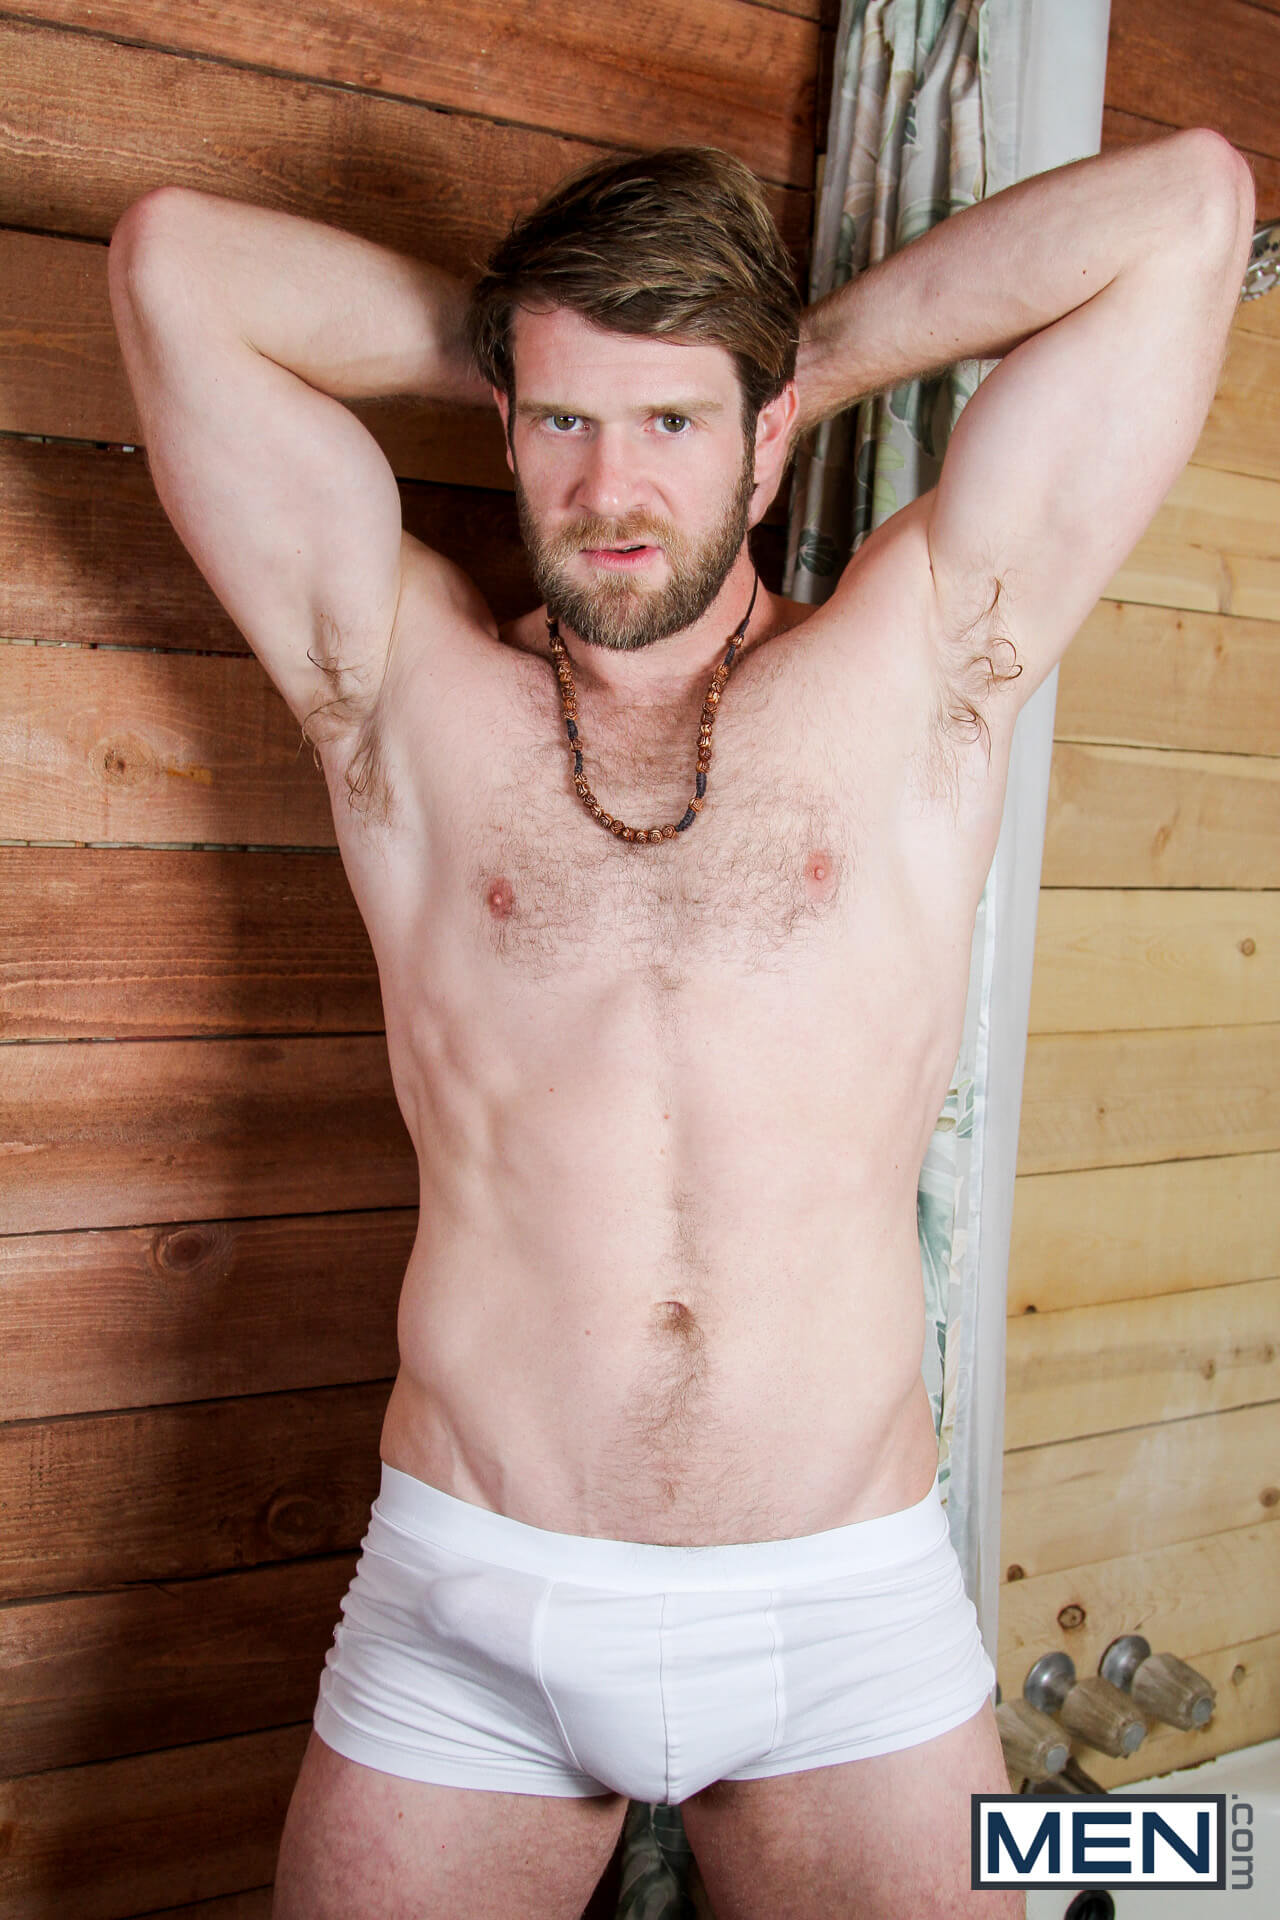 men drill my hole the cult part 2 colby keller roman todd gay porn blog image 4